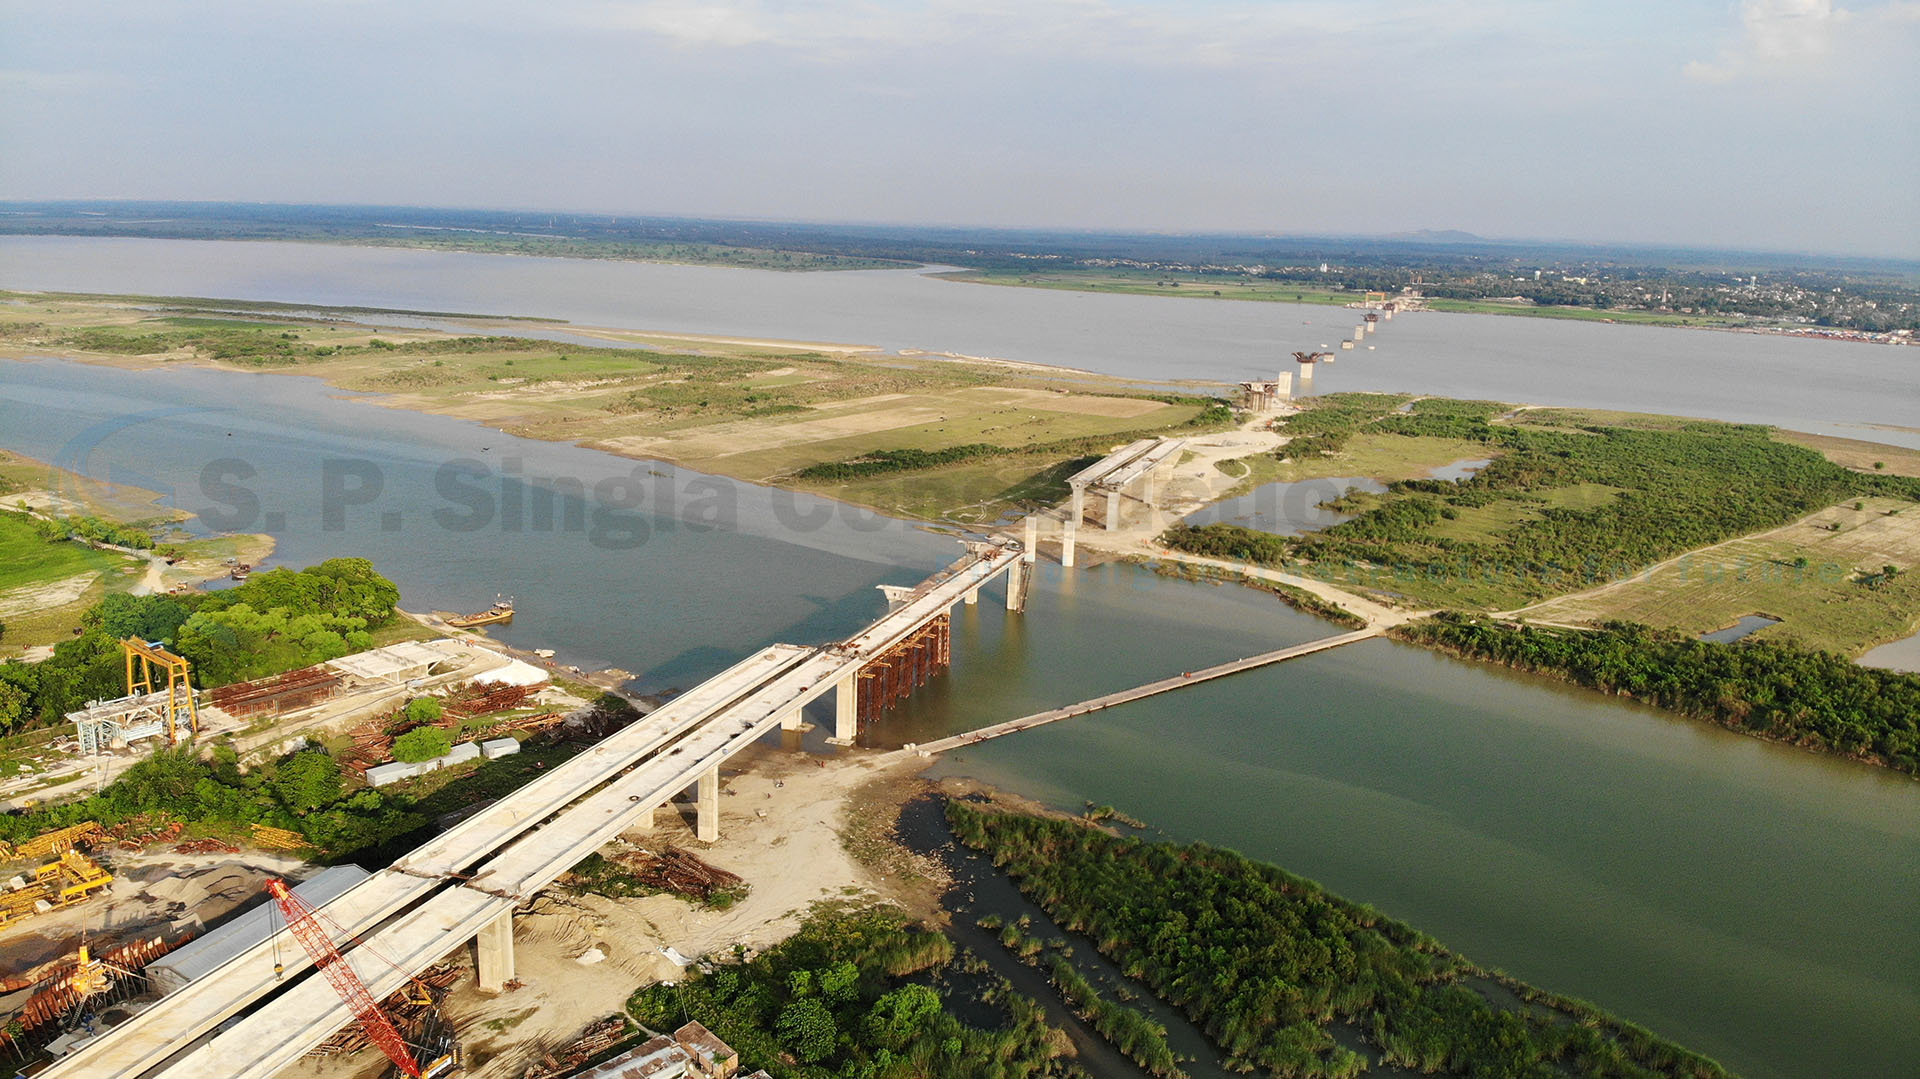 4 Lane Cable Stayed Bridge with Footpath across the Ganges between Sultanganj & Aguwani Ghat Connecting NH 31 & NH80 in Bihar